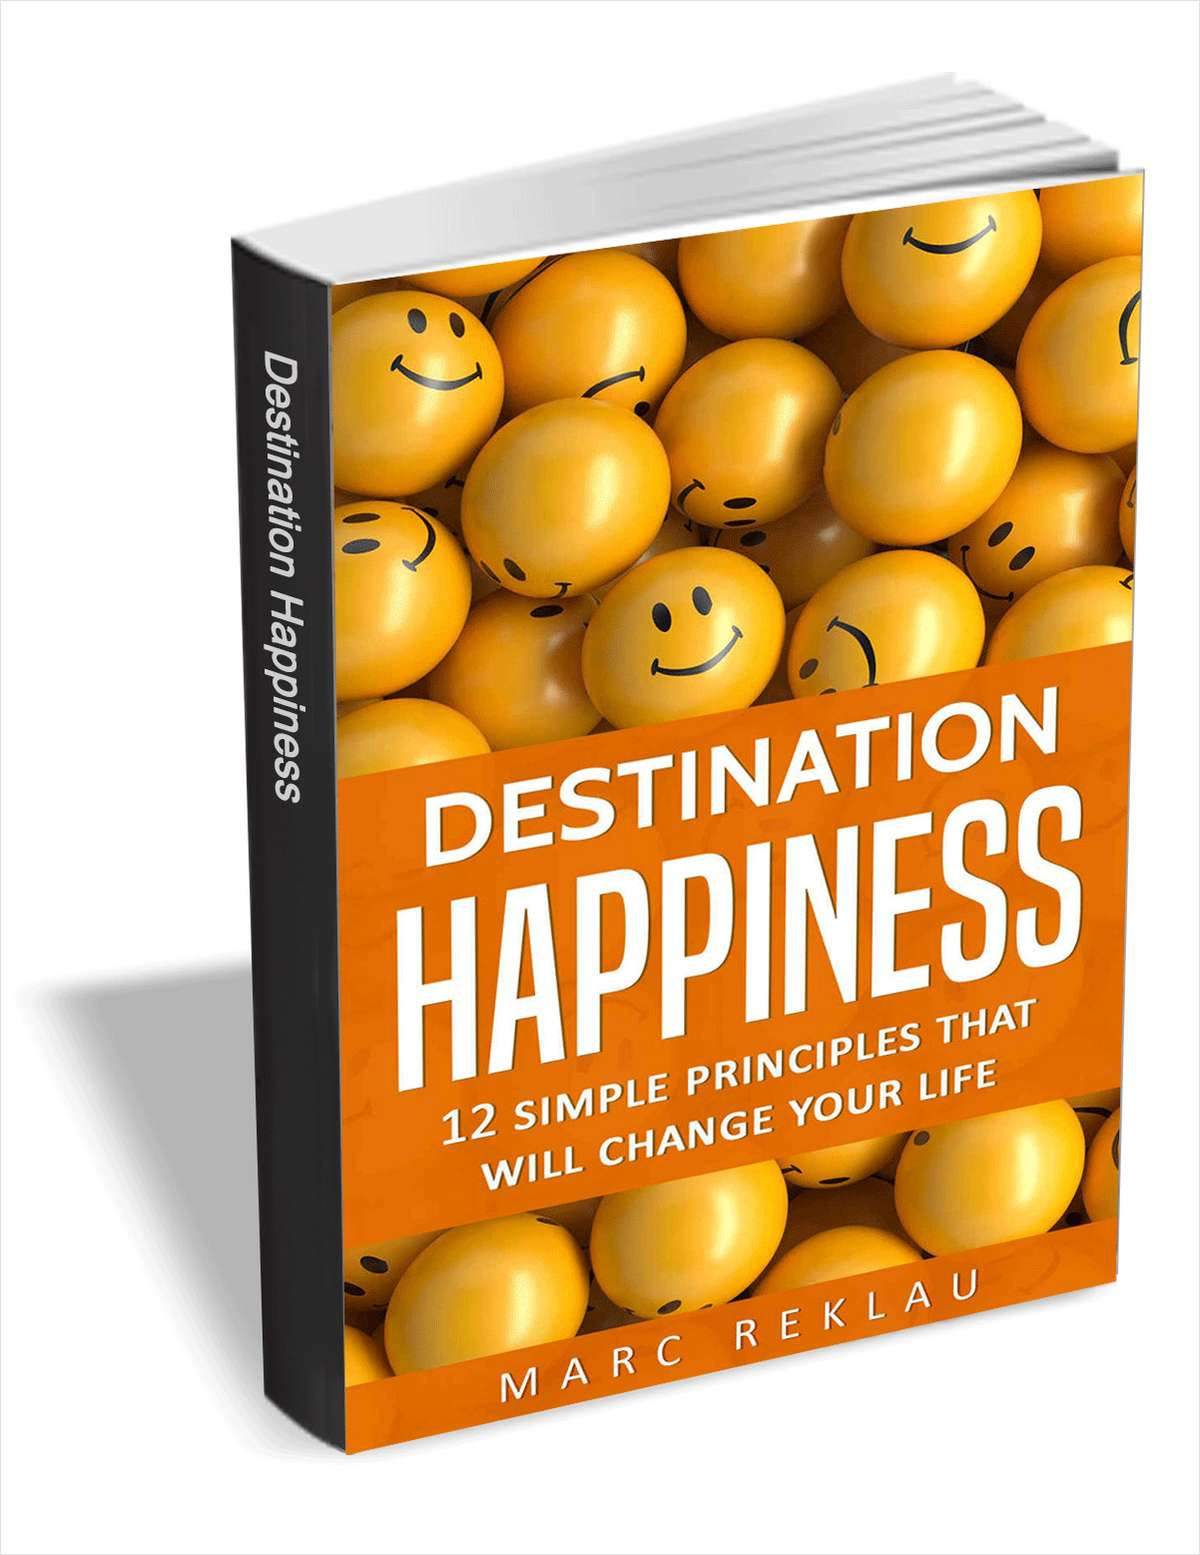 Destination Happiness - 12 Simple Principles That Will Change Your Life ($4.99 Value) FREE For a Limited Time Screenshot